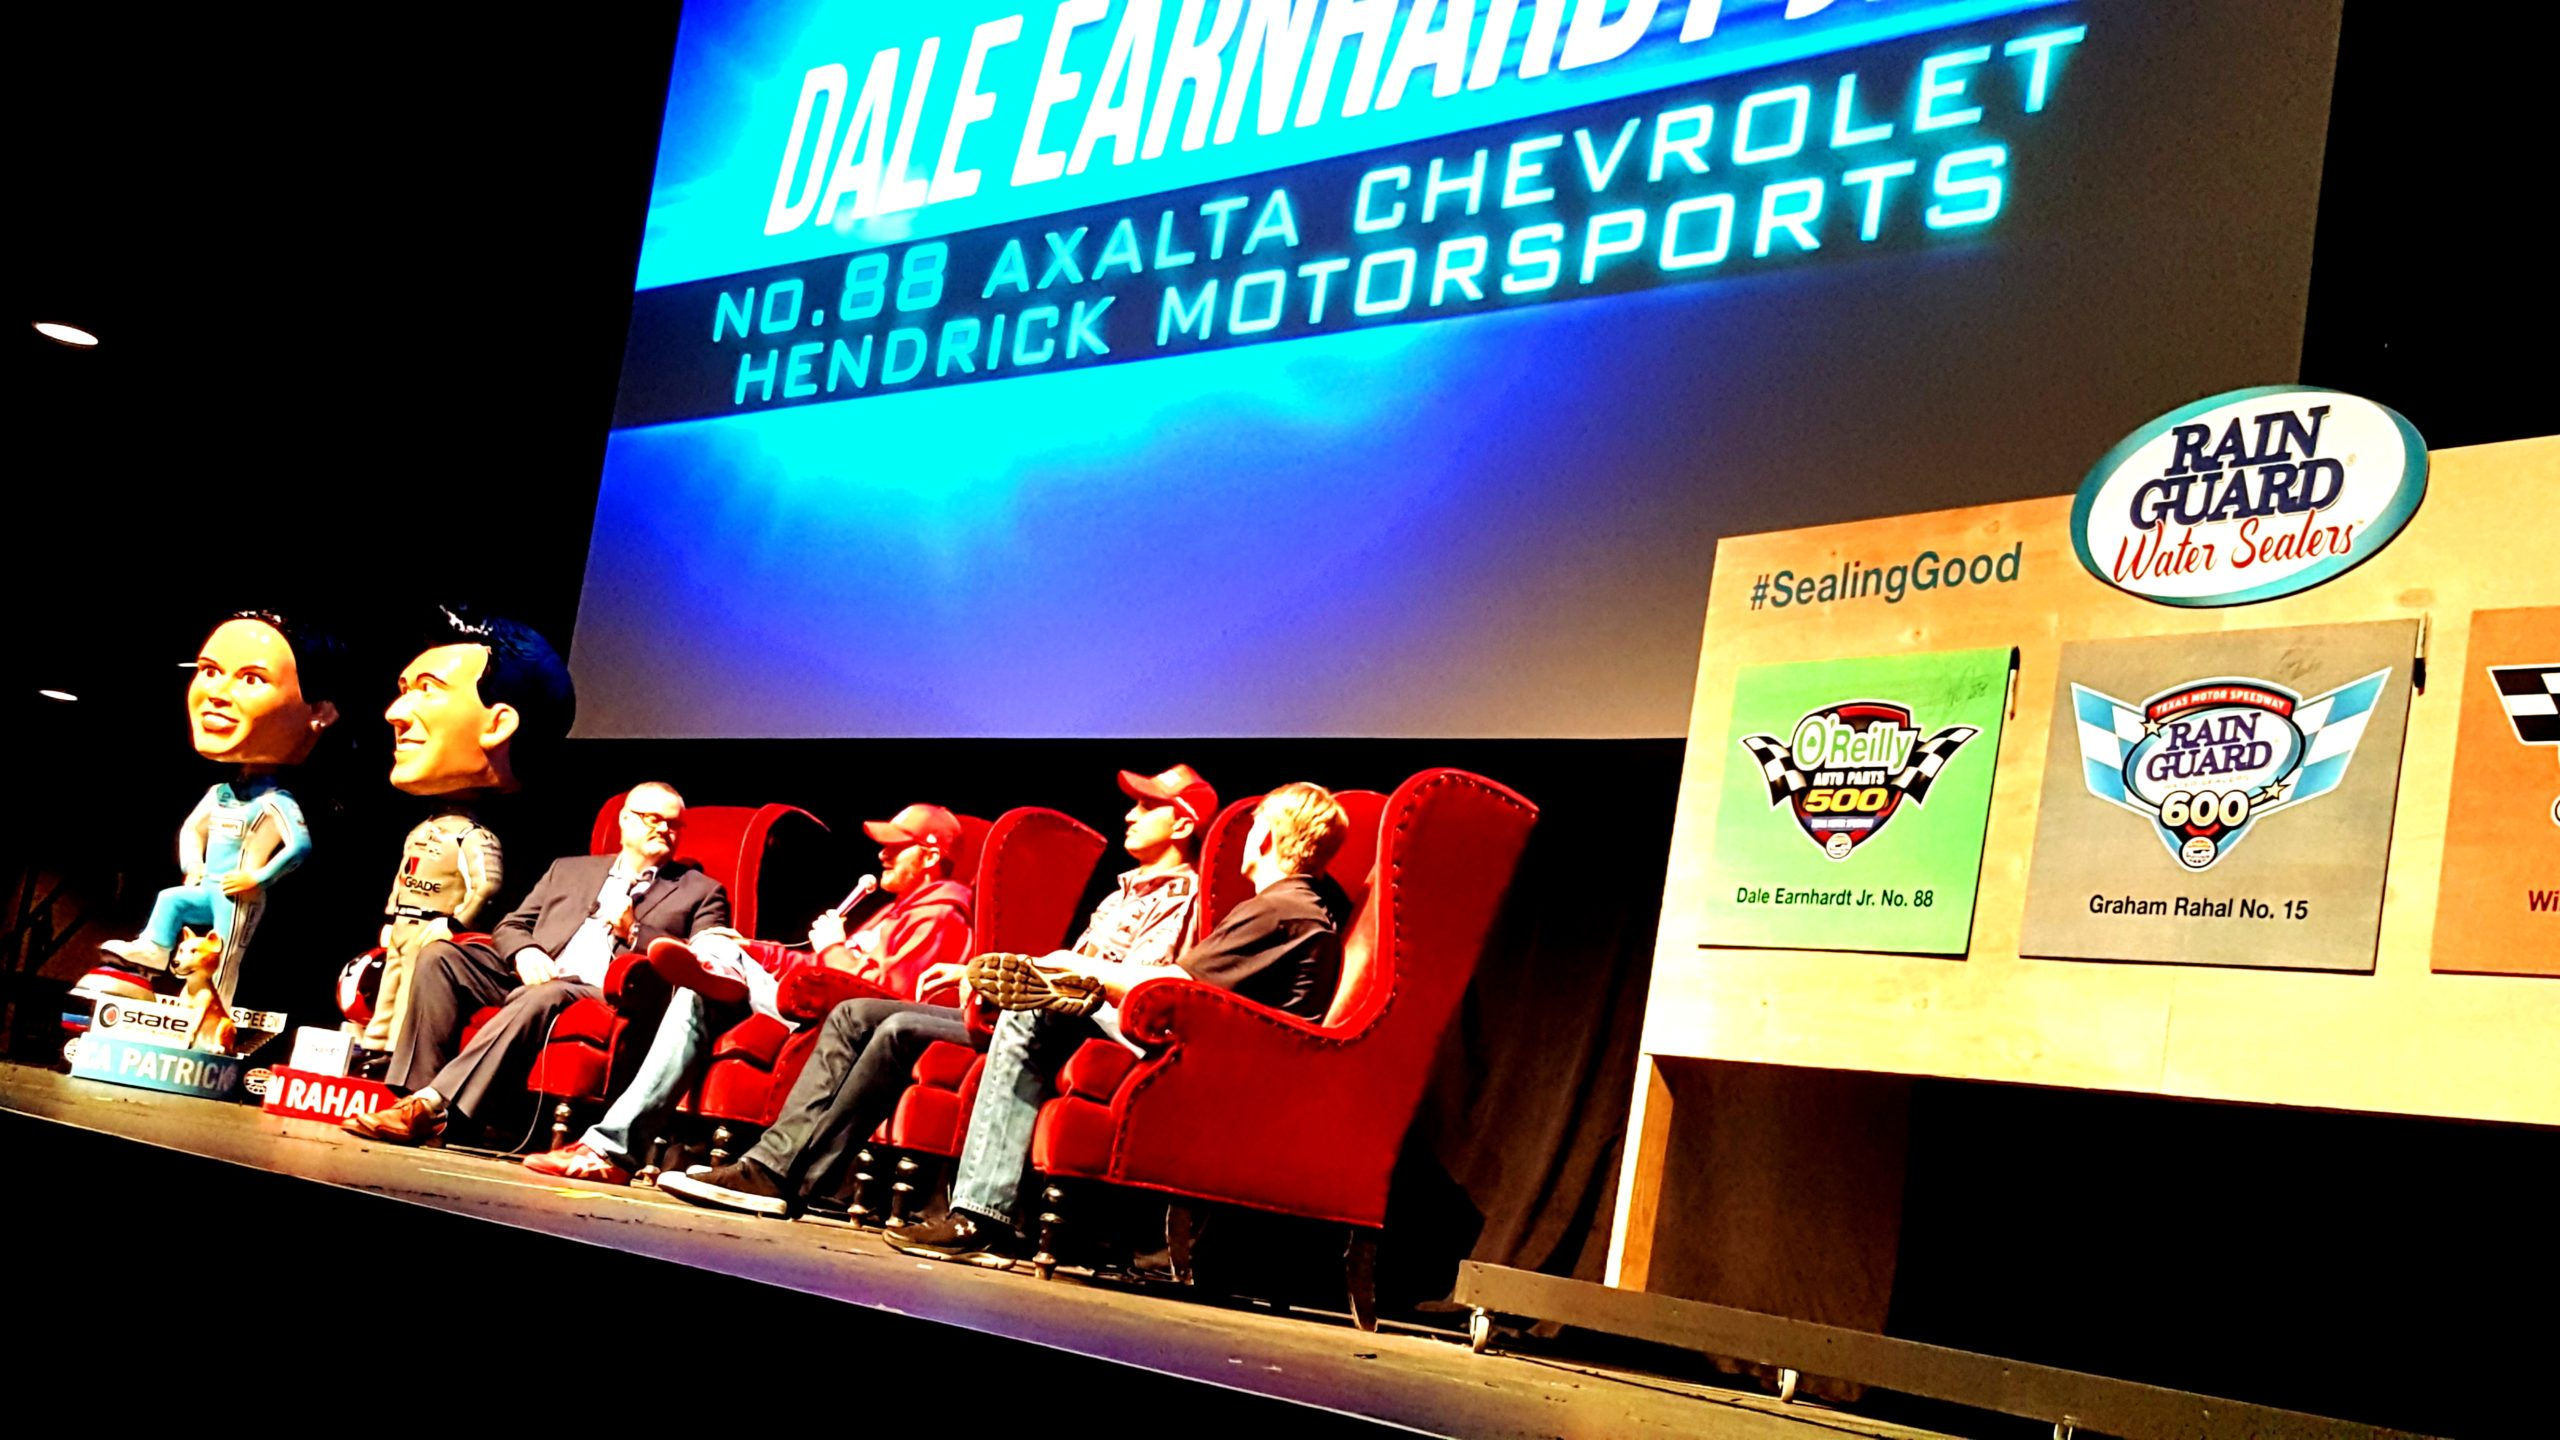 Dale Motorsports Marketing Rahal Rainguard